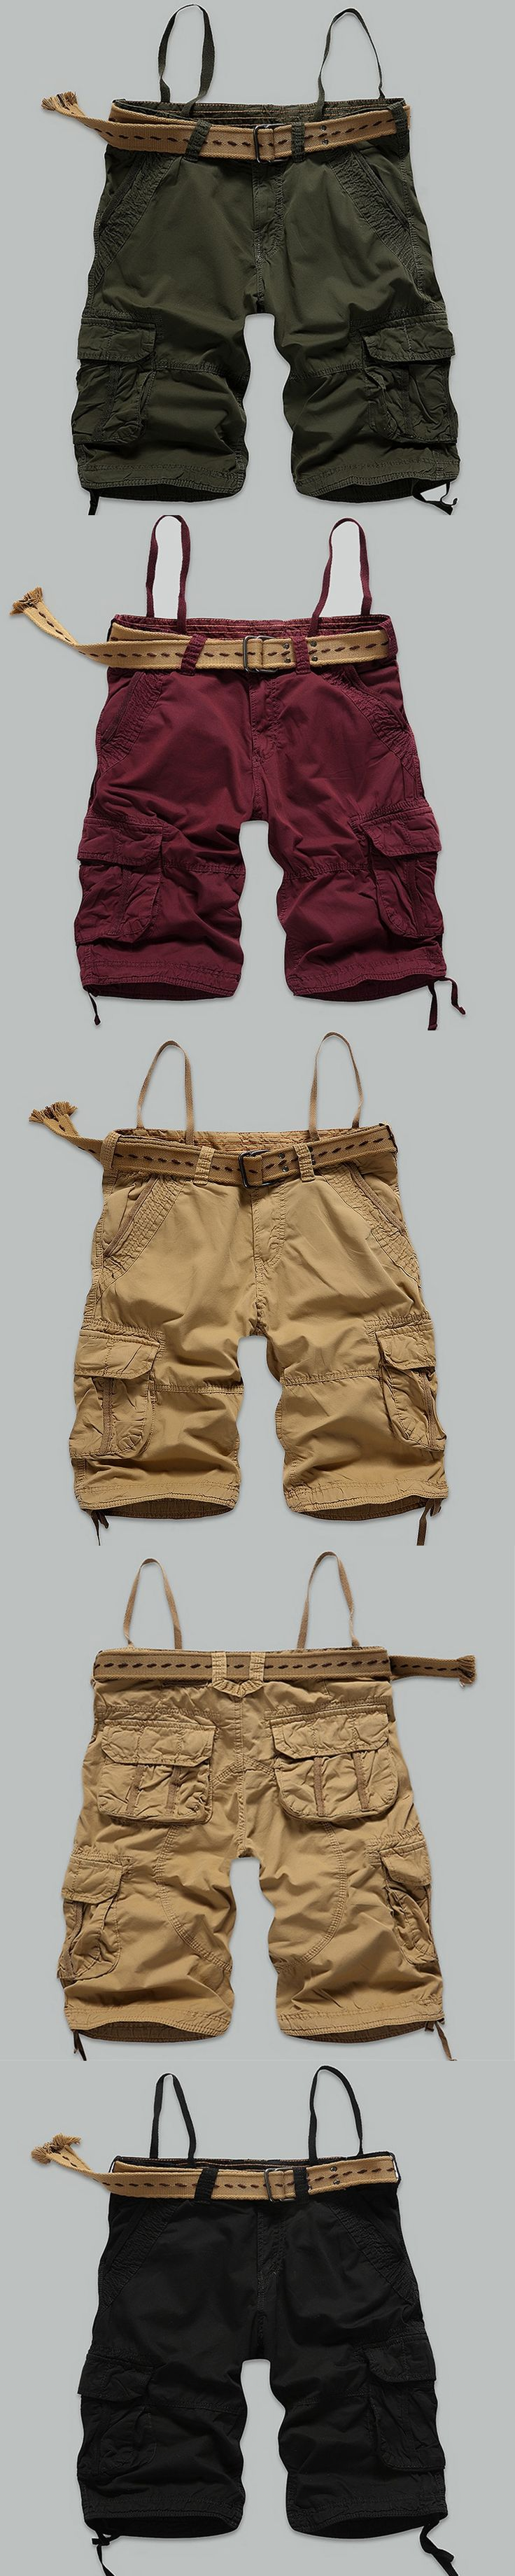 2017 Hot sale cargo shorts men 100% Cotton Fashion Casual camouflage Summer brand male clothing Army green pocket Plus size30-38